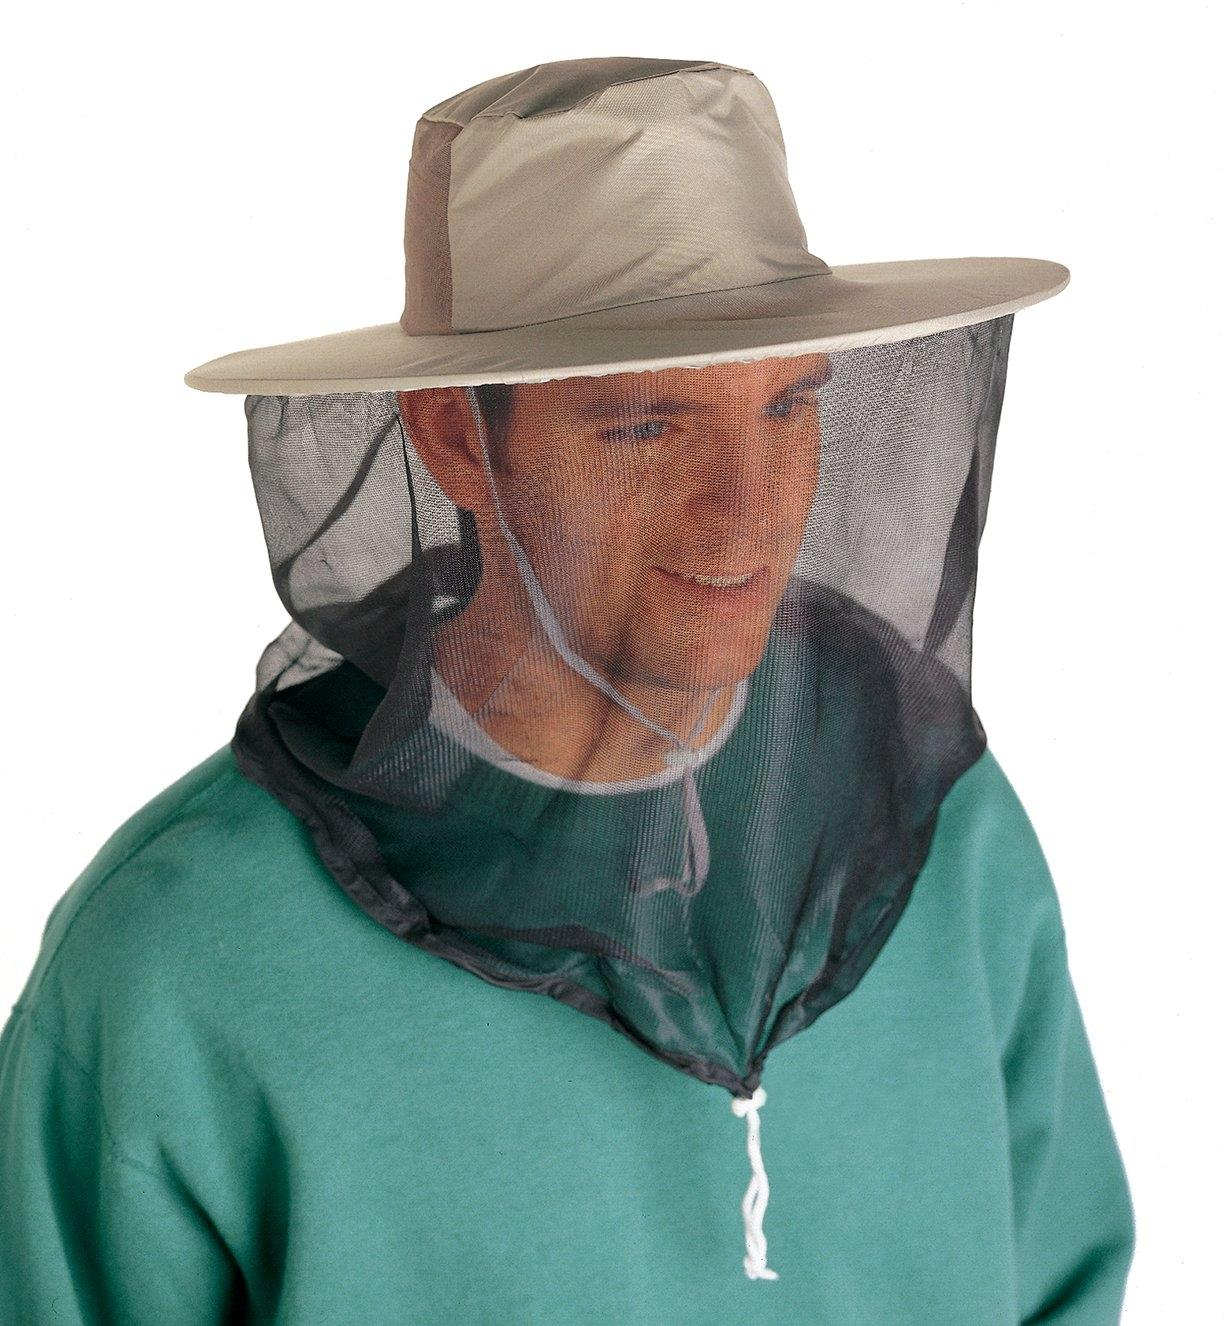 A man wearing the Pocket Hat with the mosquito head net